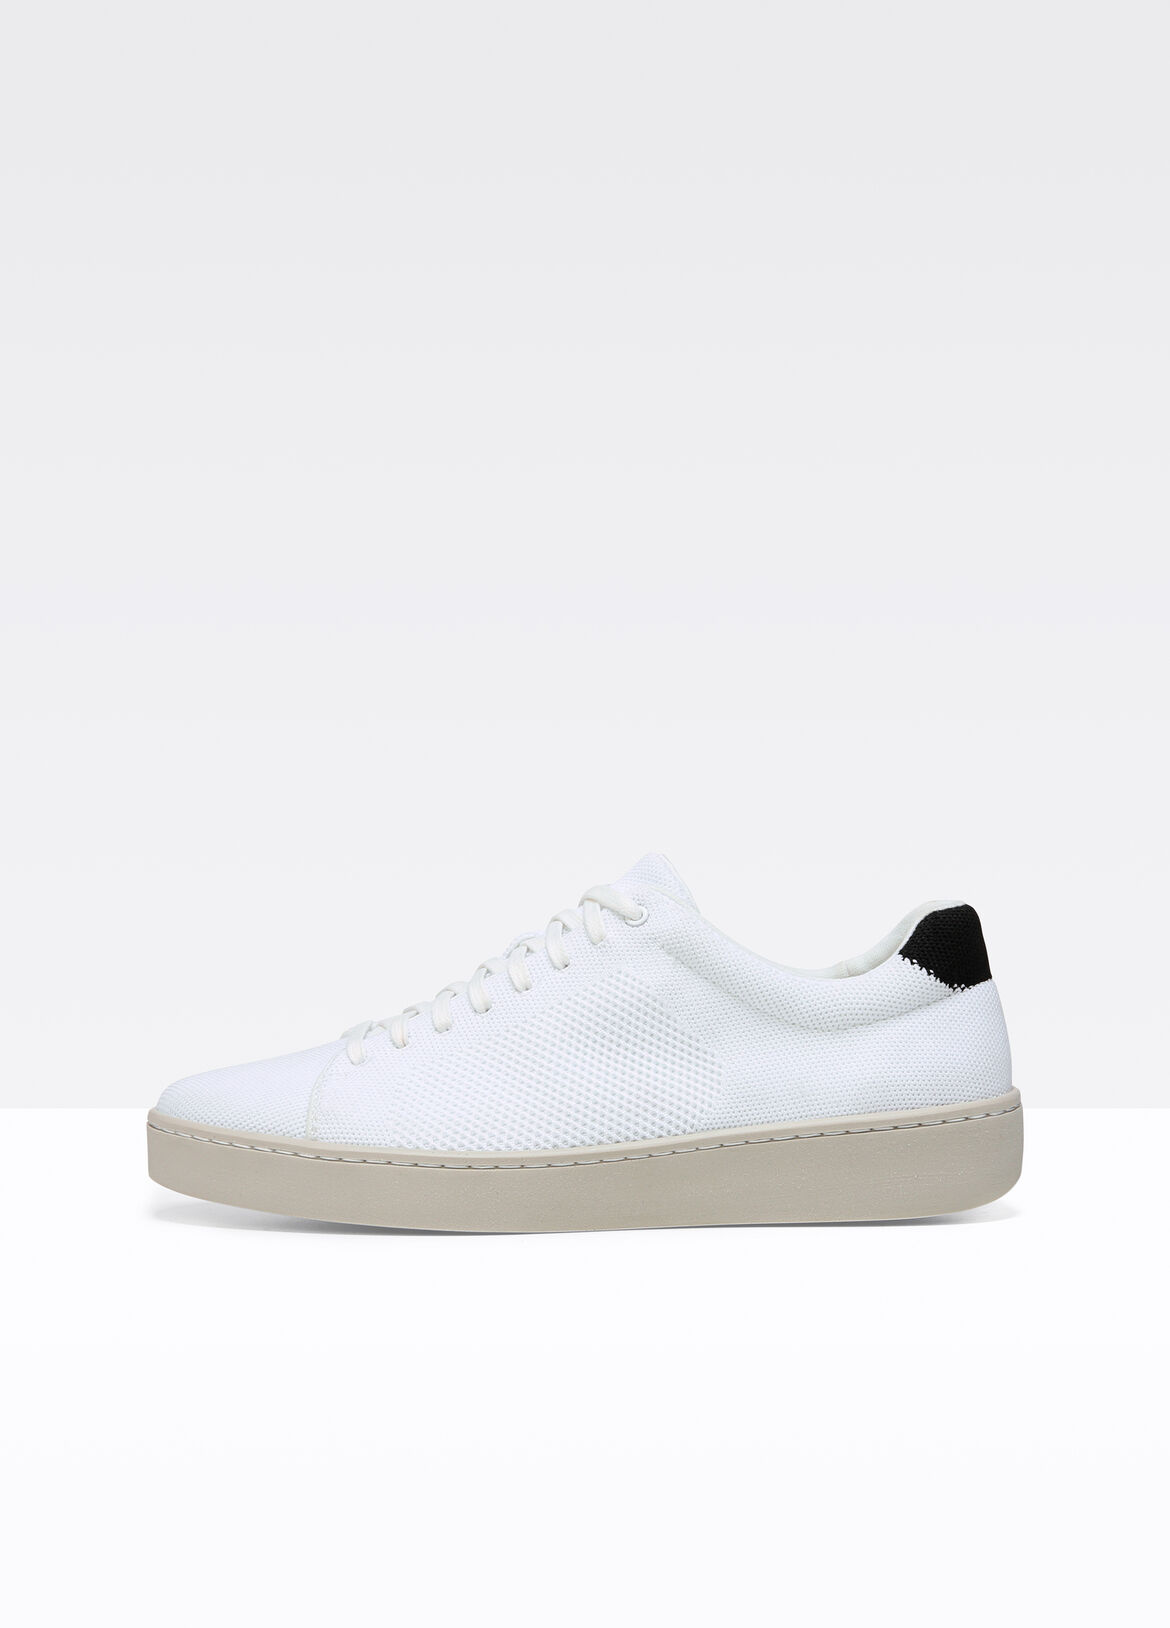 Designer Shoes For Men Knitted Sneakers